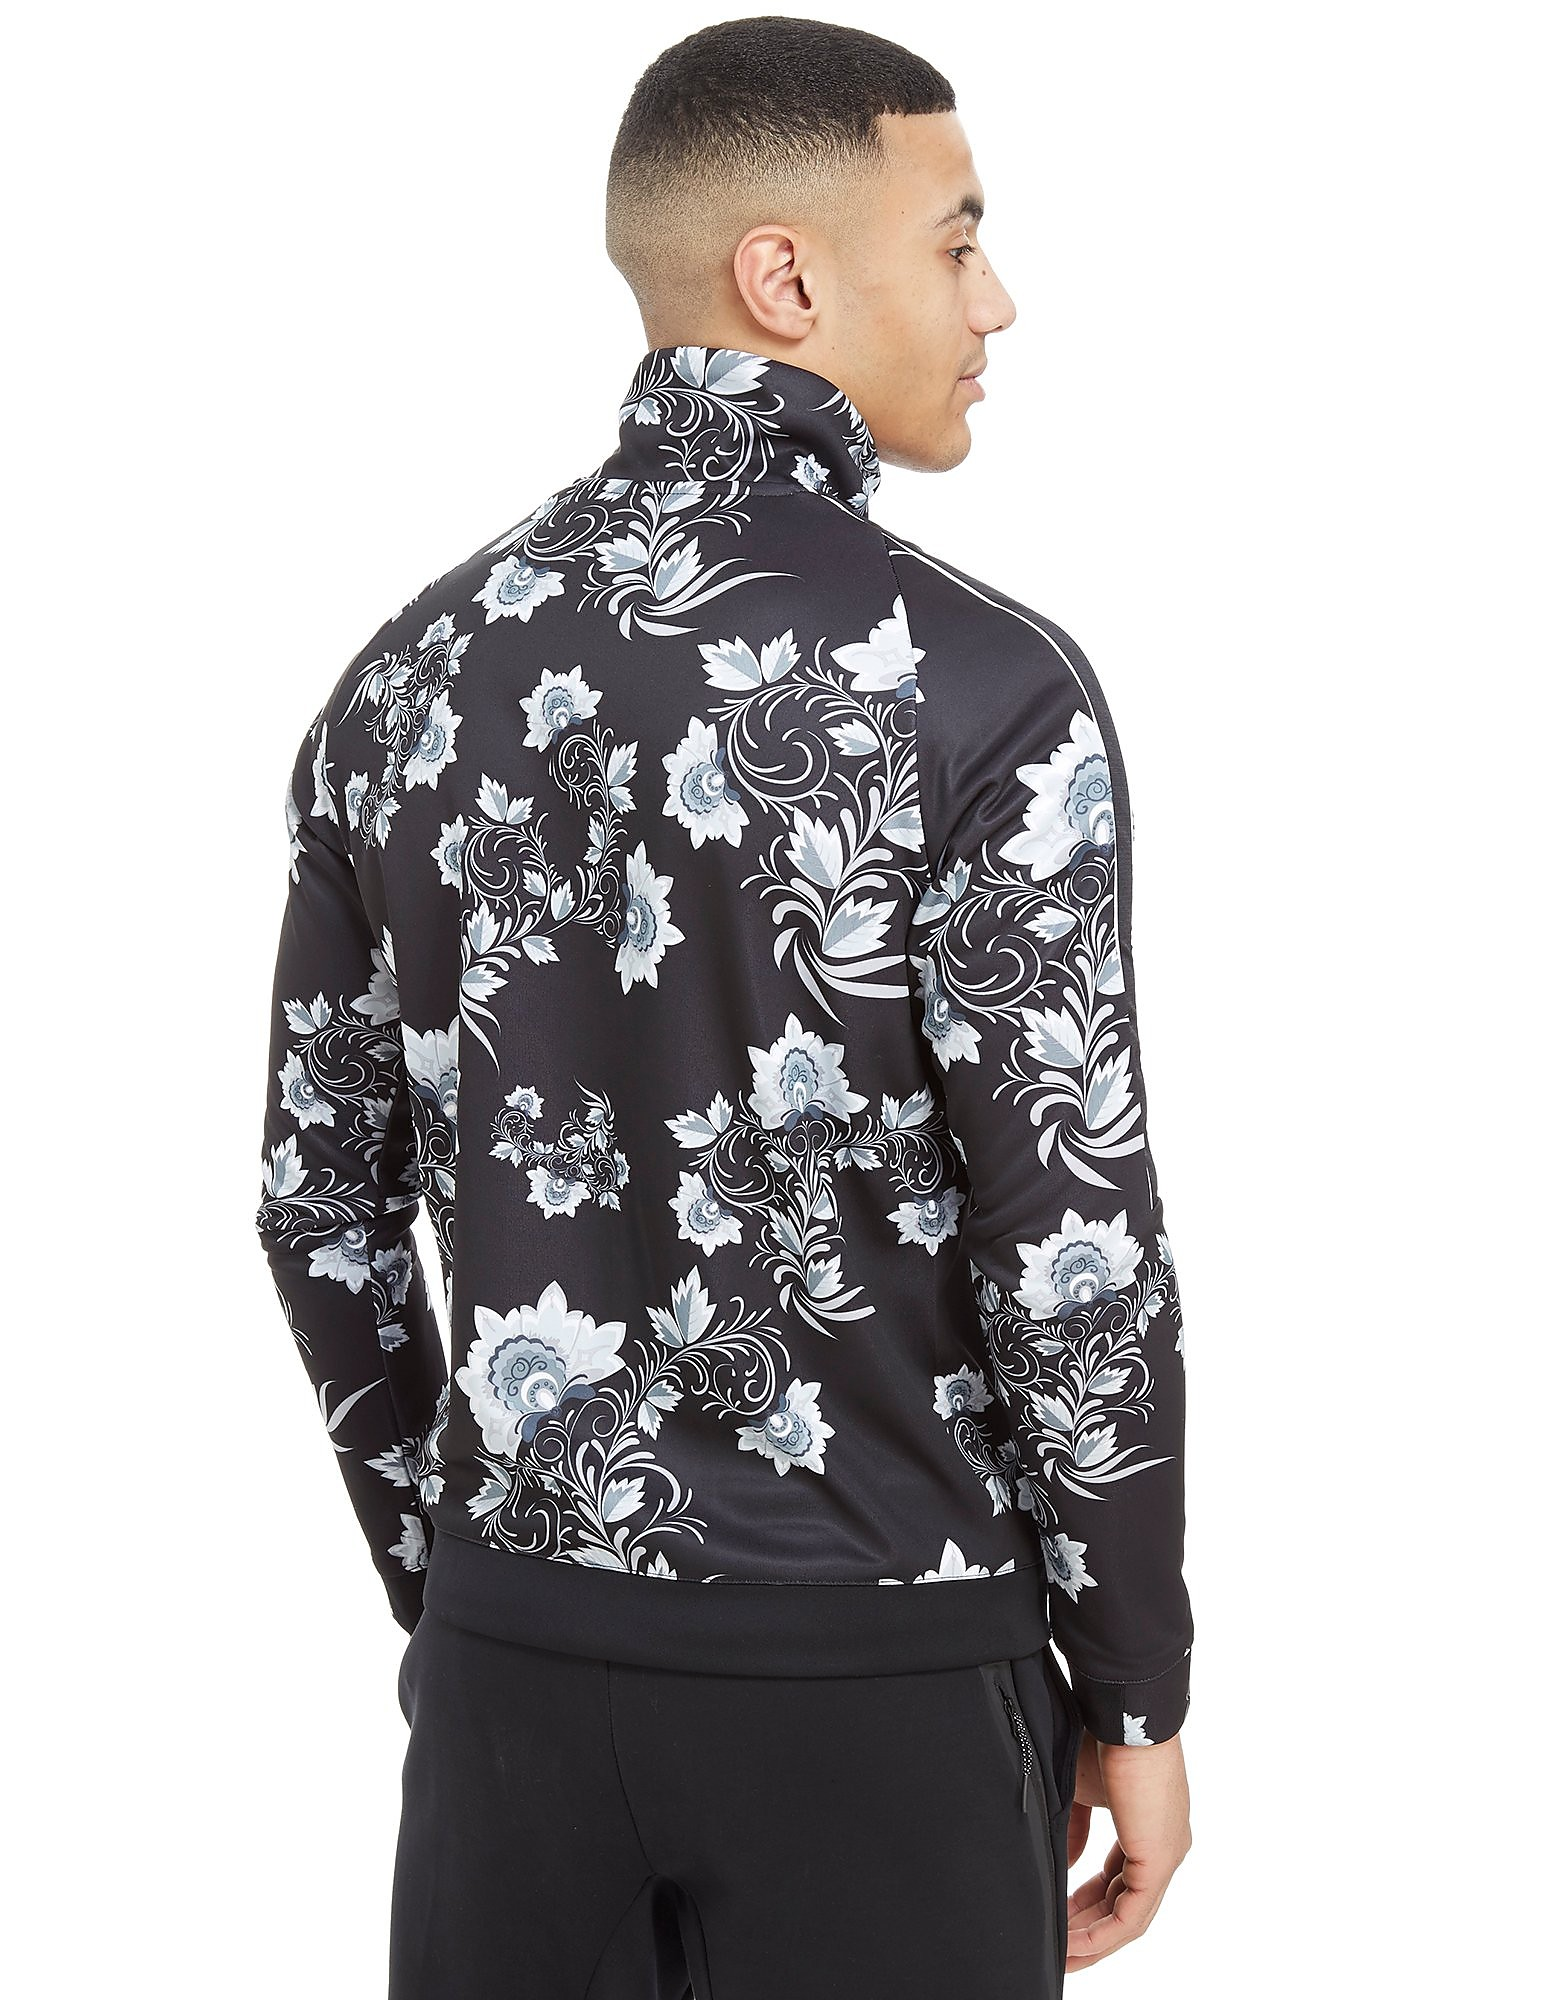 Nike Floral All Over Print Track Top